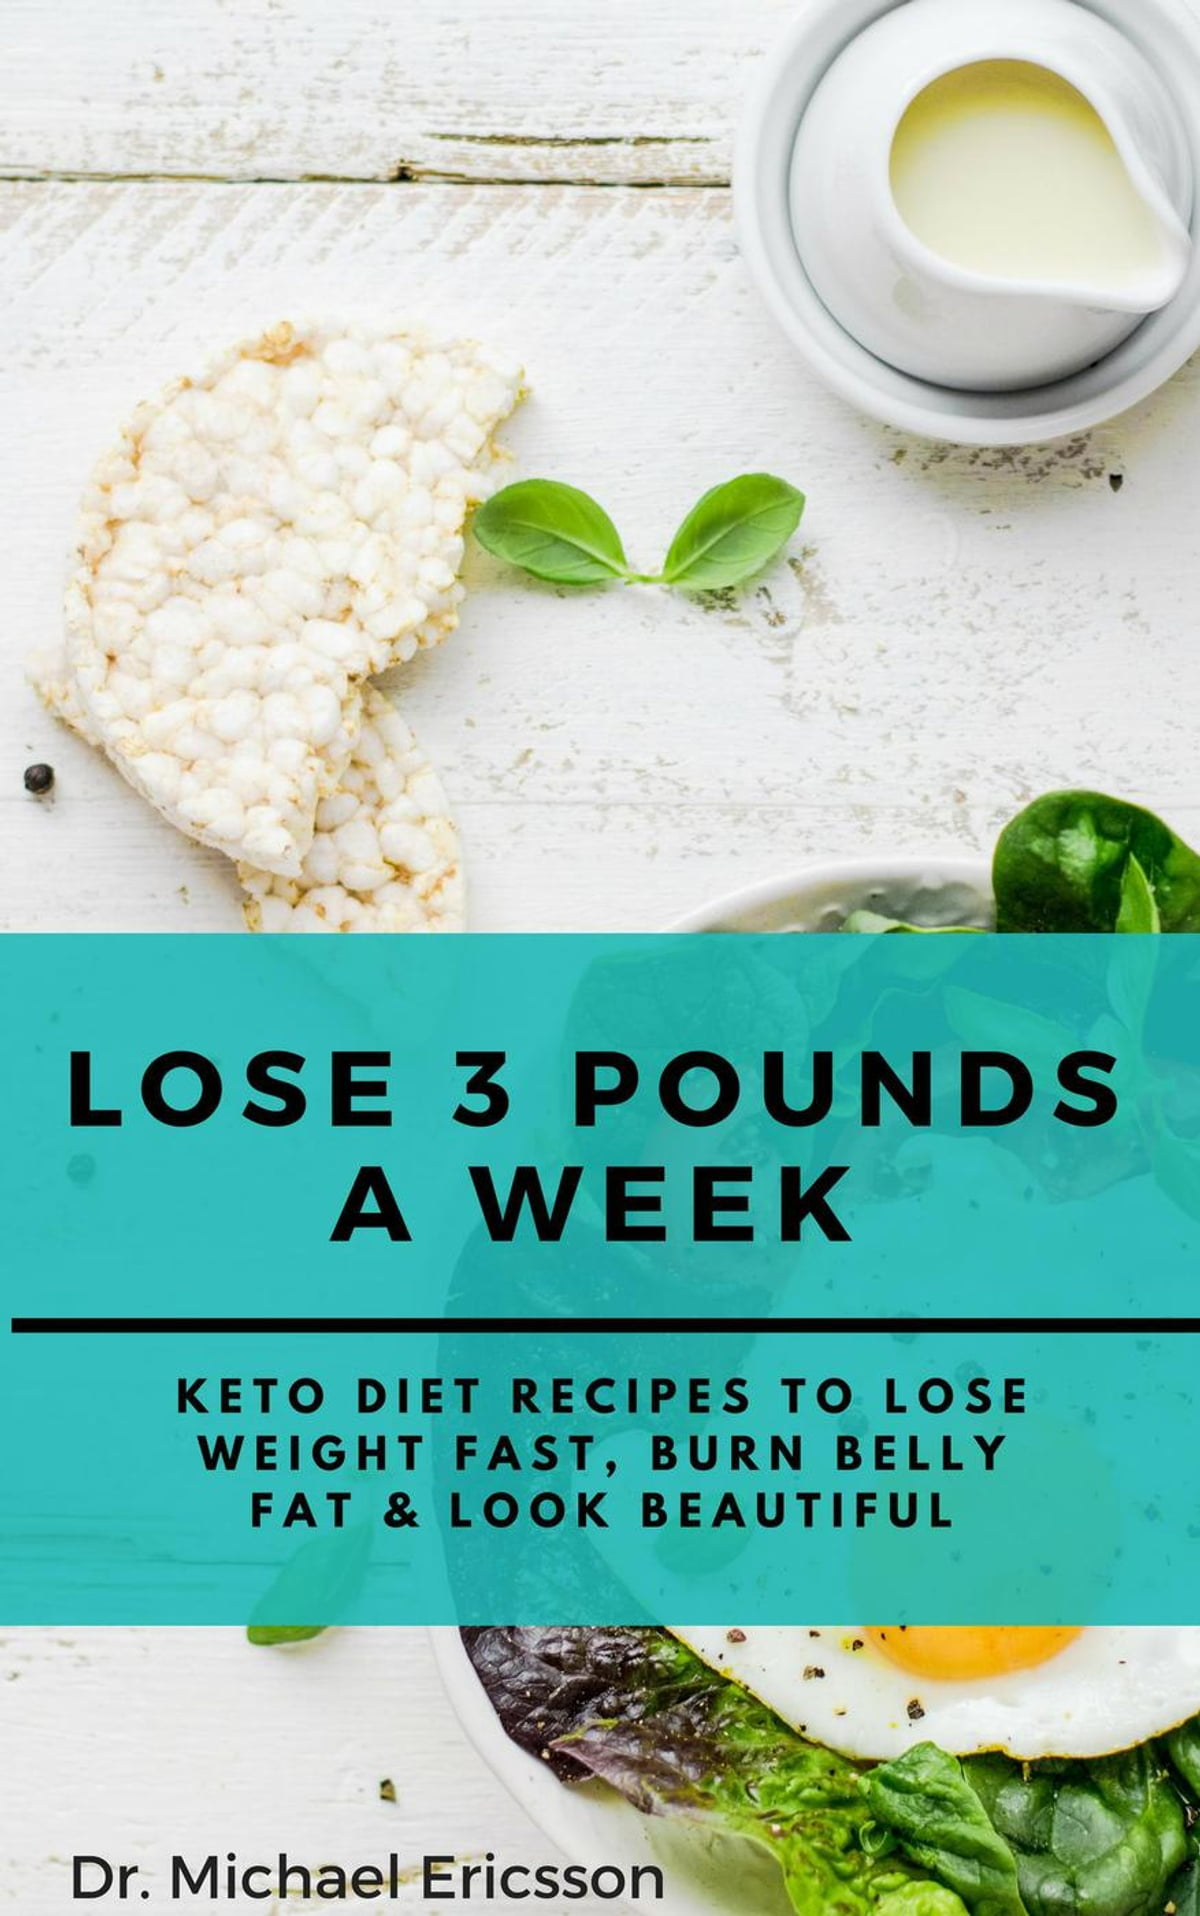 how much to eat to lose 3 pounds a week